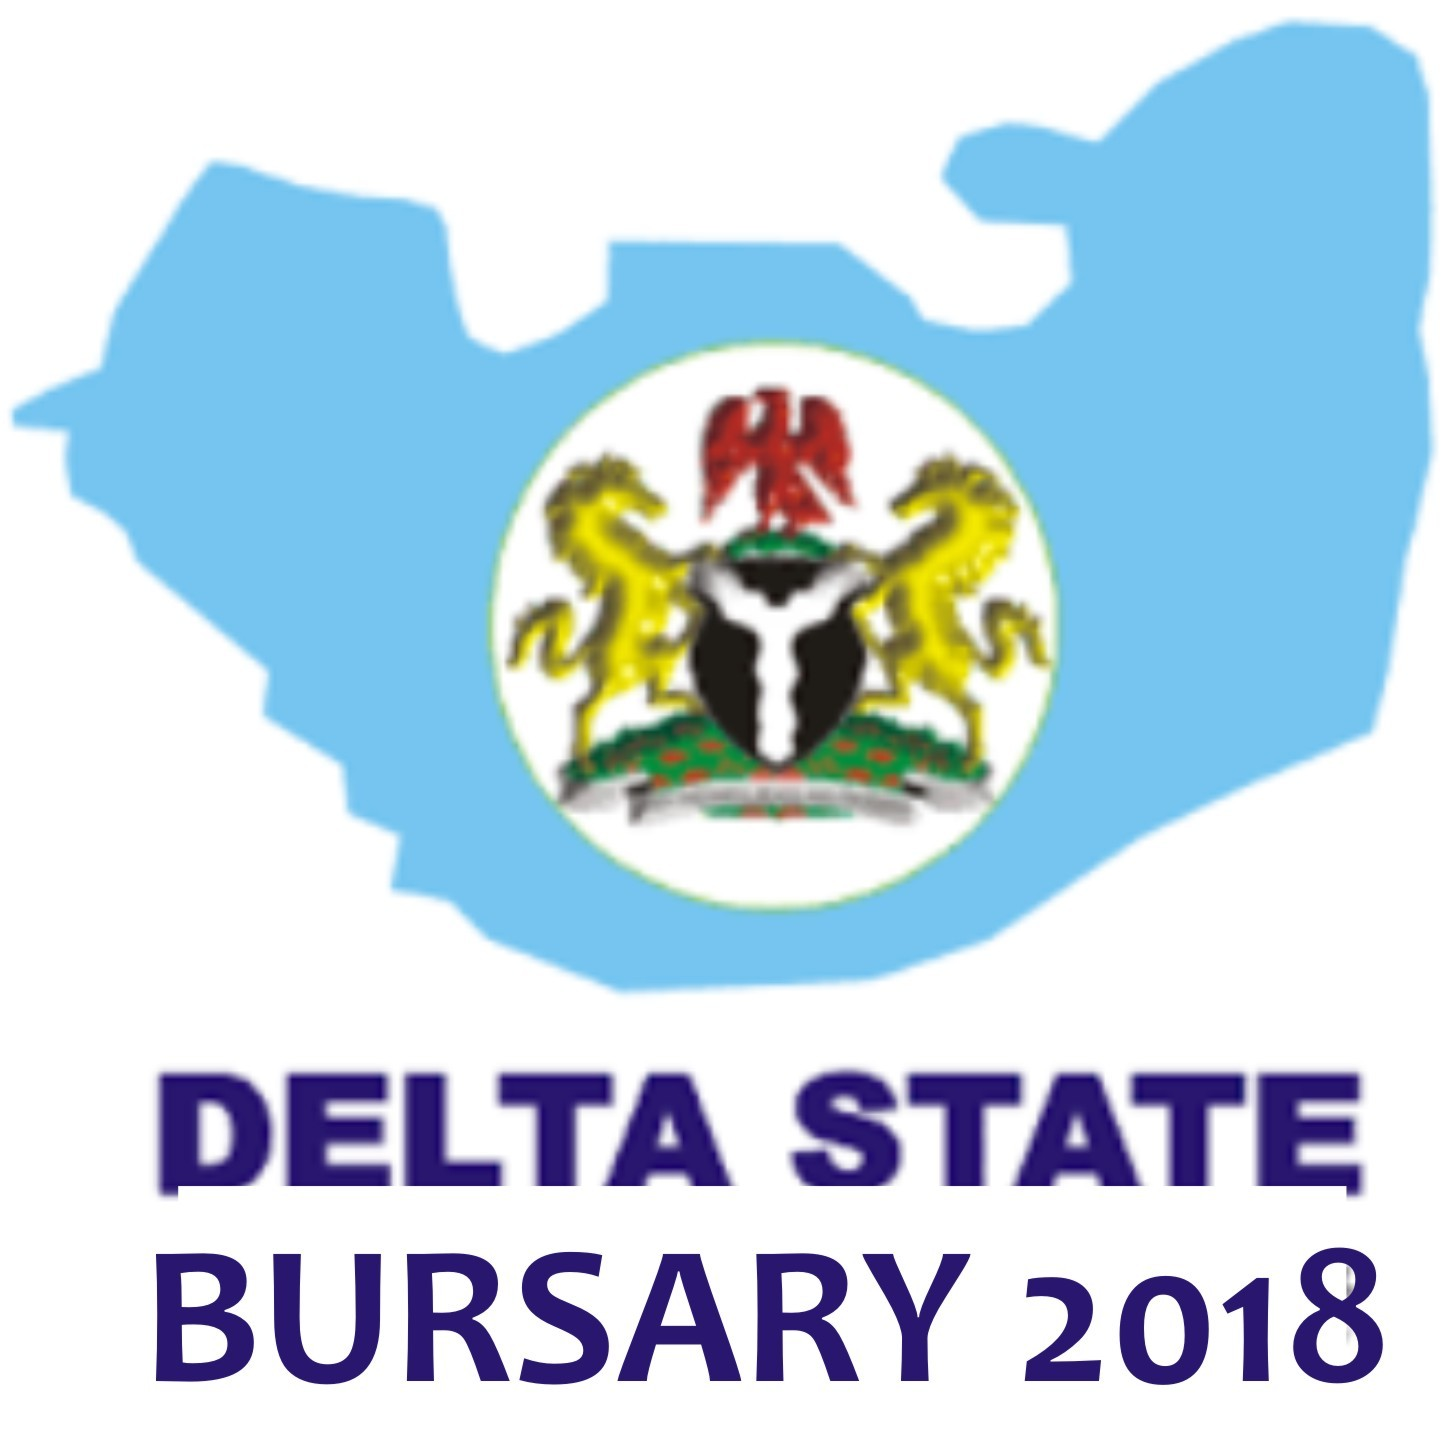 Delta state bursary 2019 – APPLY FOR THE 2019 Delta State Bursary Here